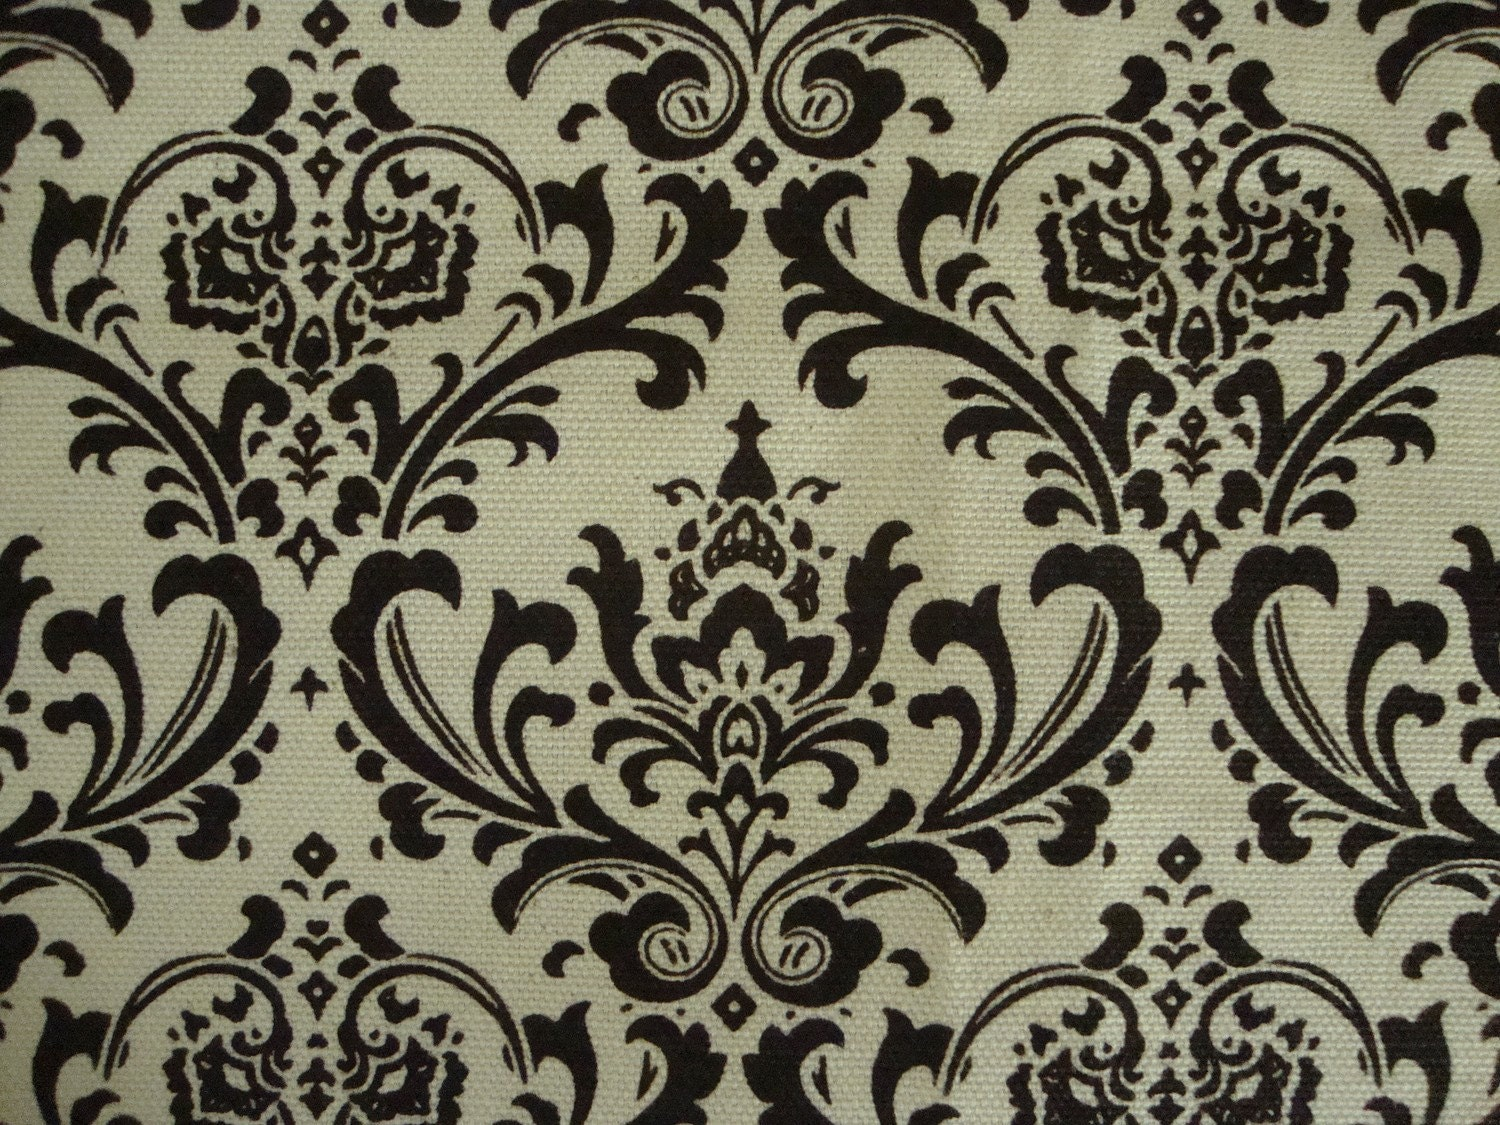 Upholstery Fabric Black And White Baroque Design Cotton